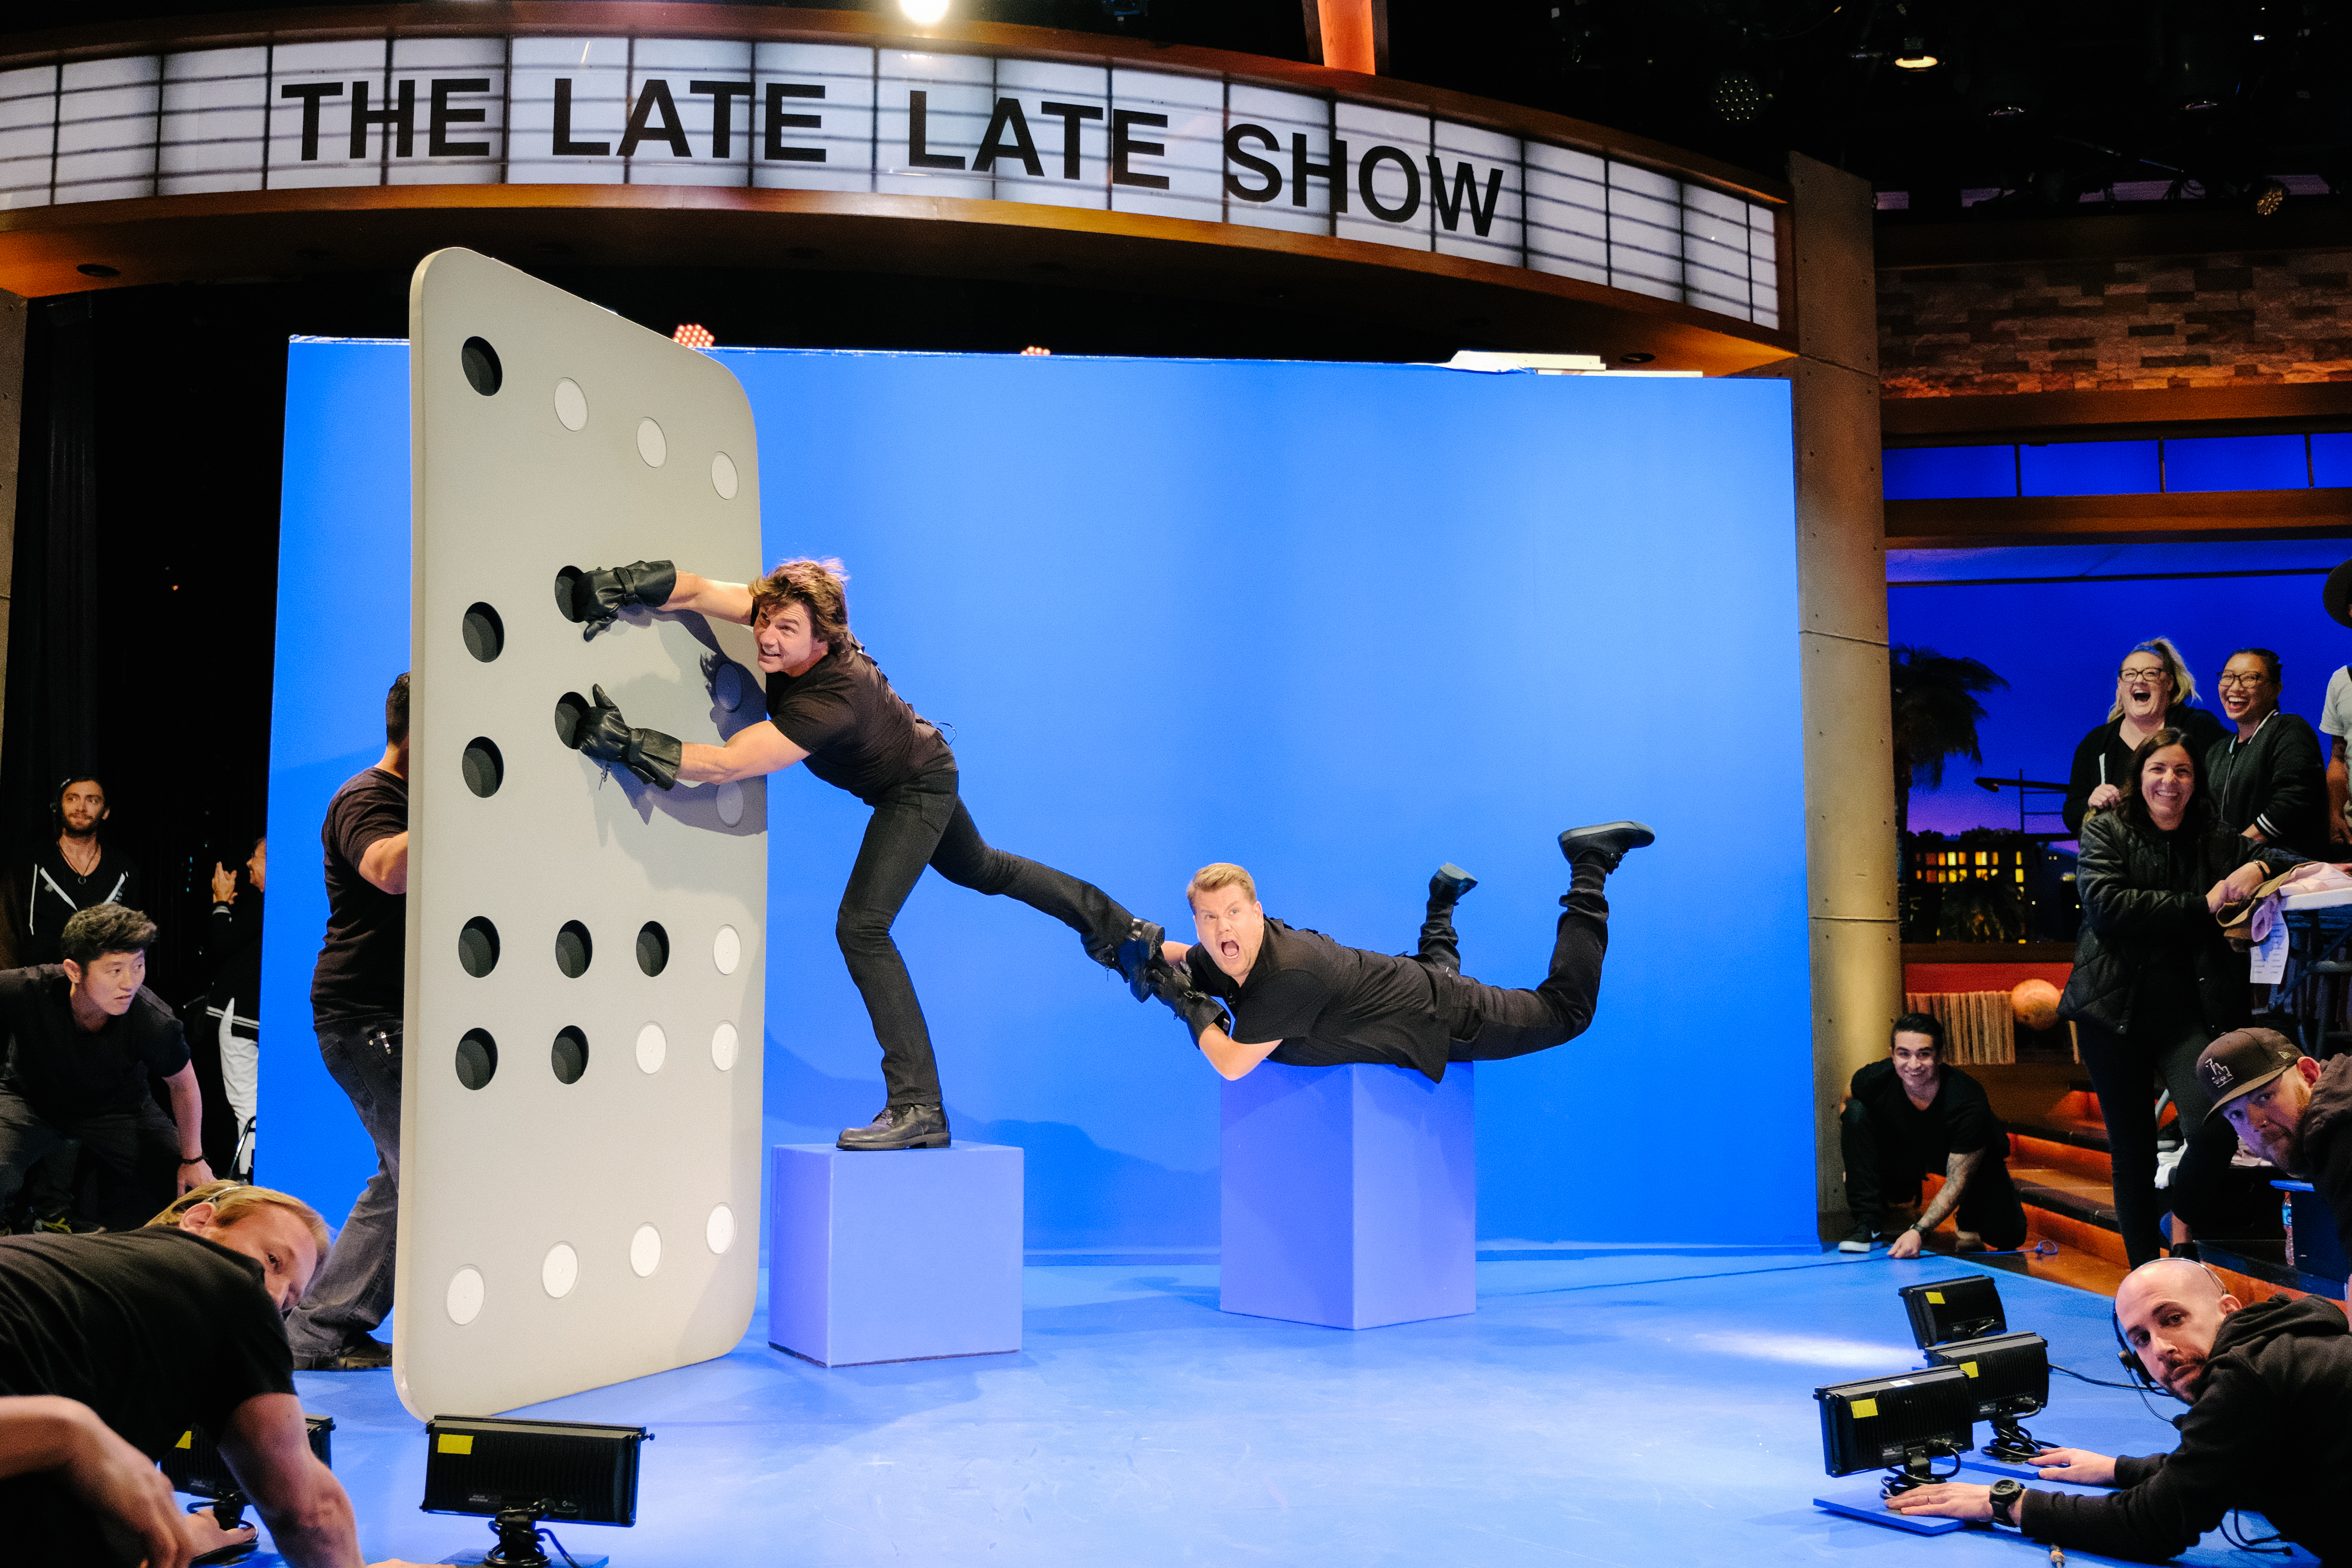 Tom Cruise and James Corden reenact the plane scene from Mission: Impossible - Rogue Nation.